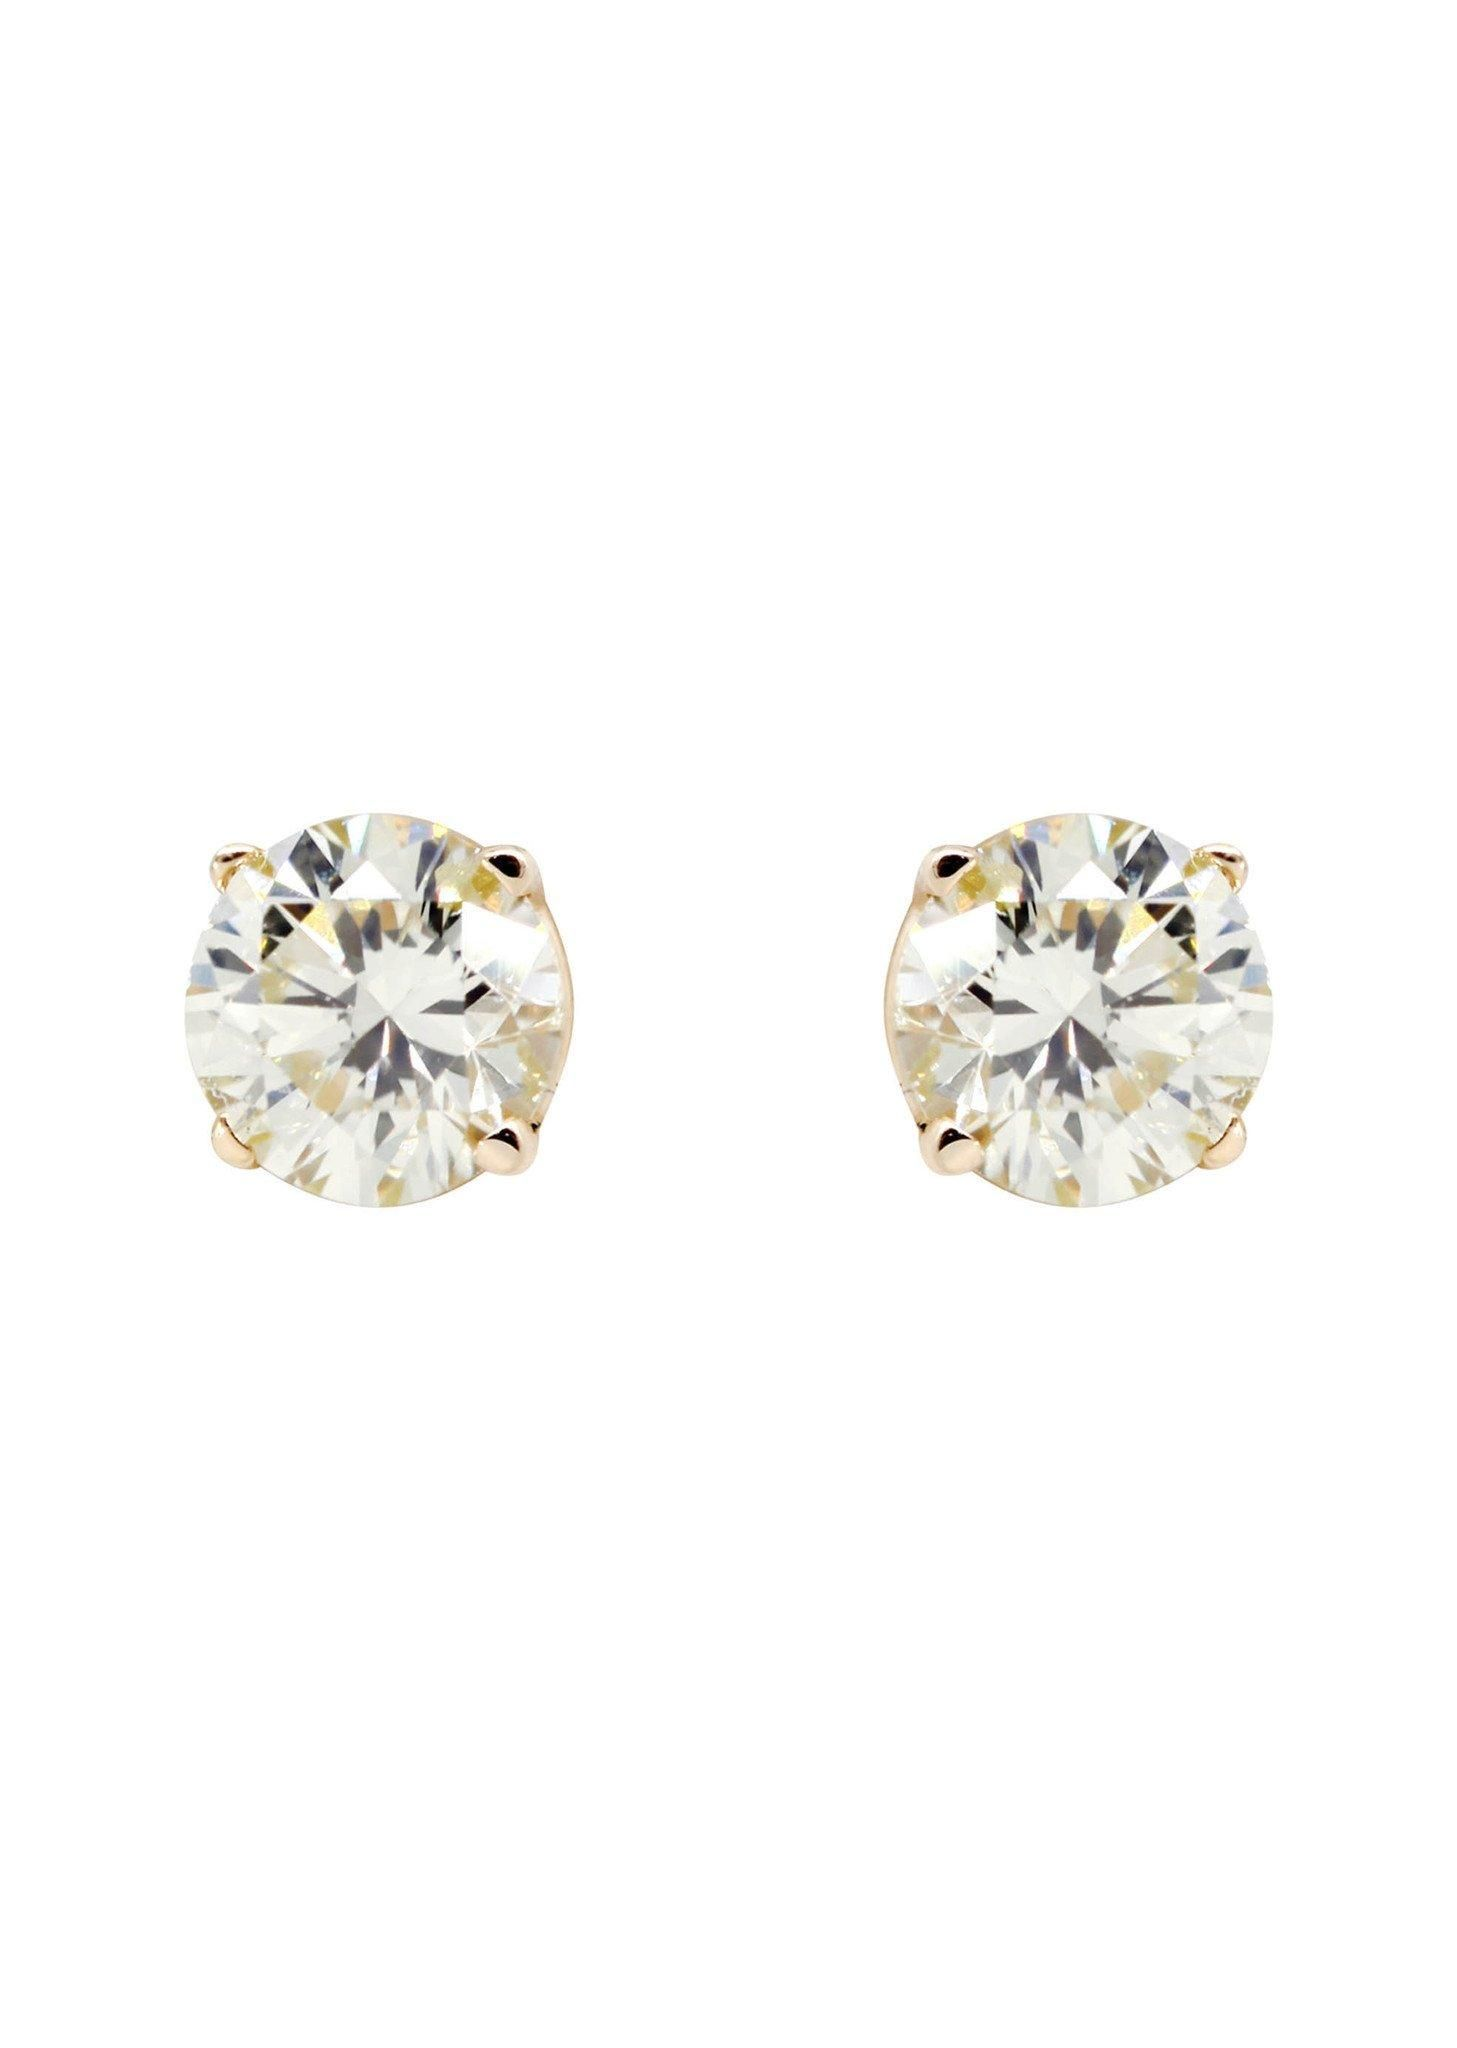 Adorewe Frostnyc Jewelry Frost Nyc Round Diamond Stud Earrings 0 26 Carats